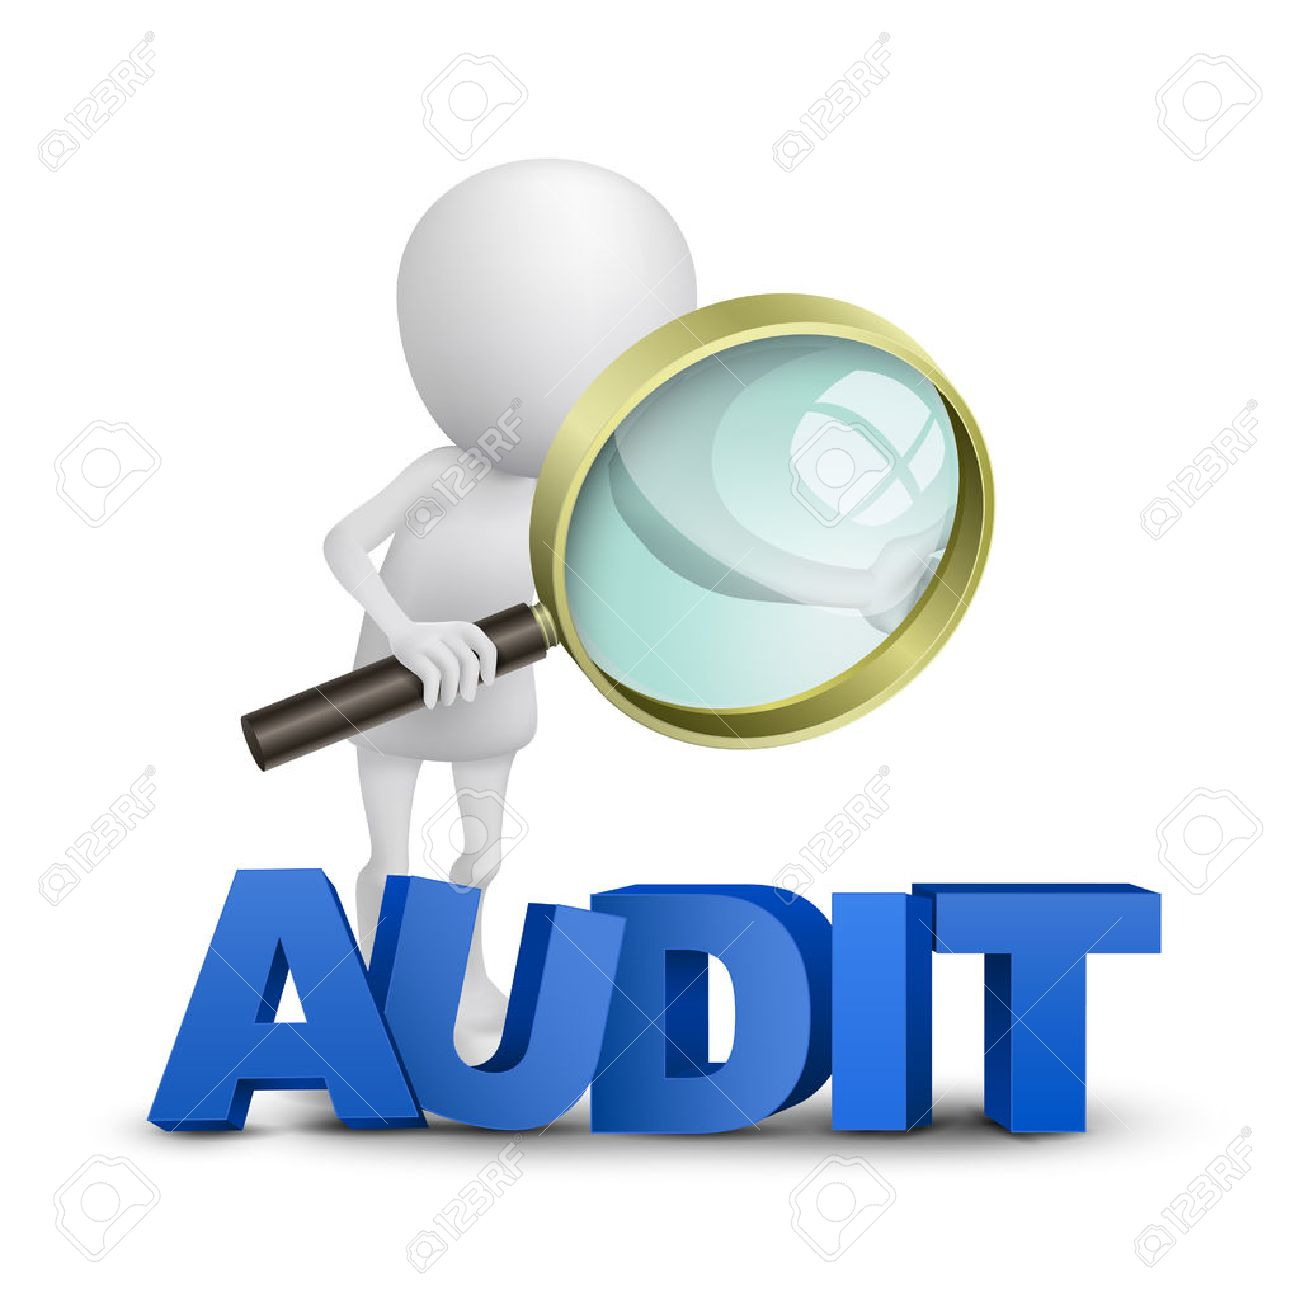 audit images stock pictures royalty free audit photos and stock